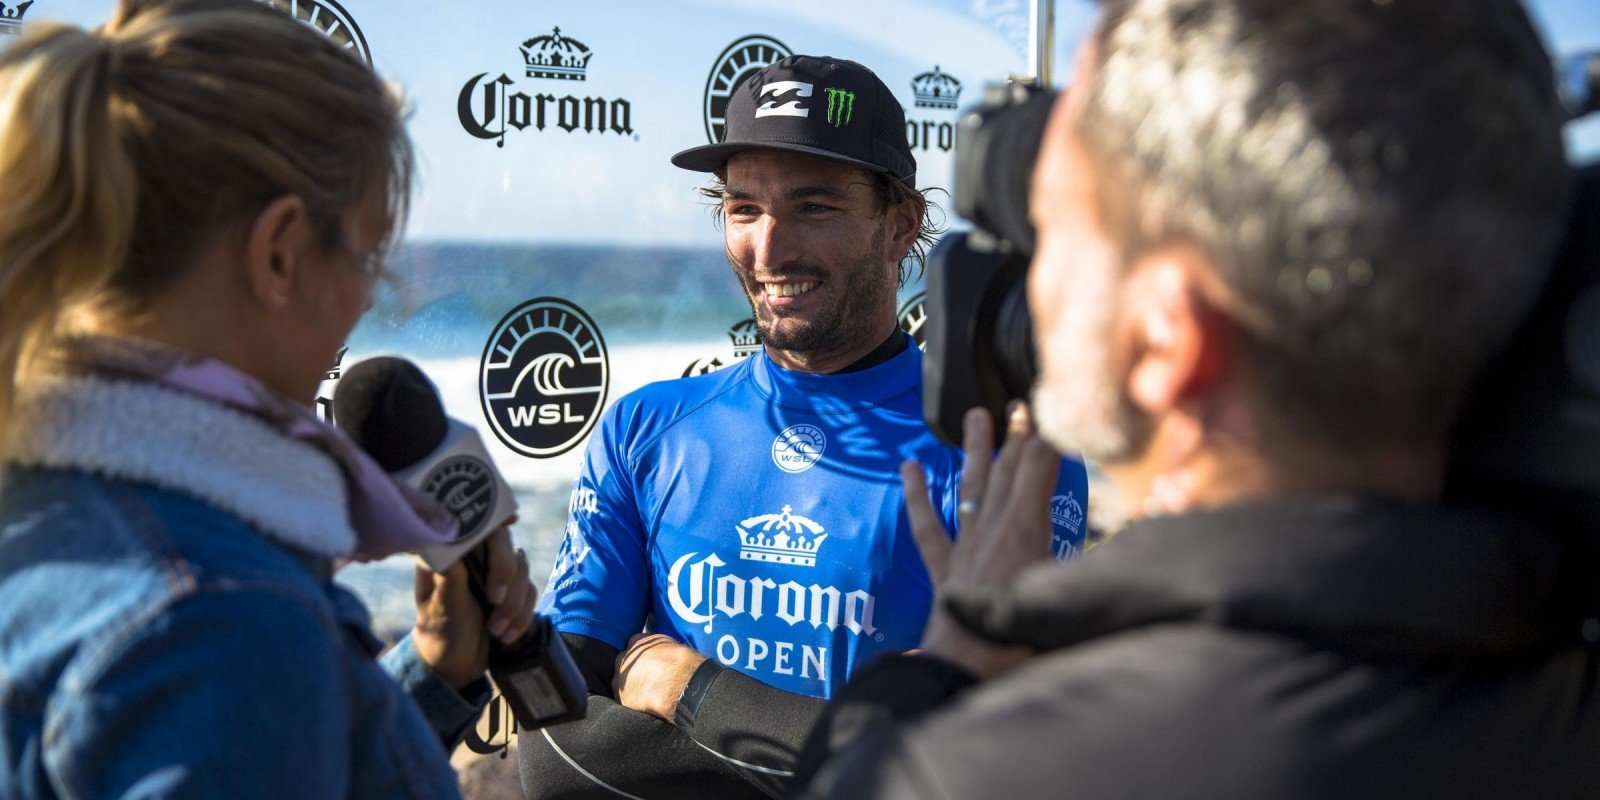 Frederico Morais competing at the J-Bay Open.